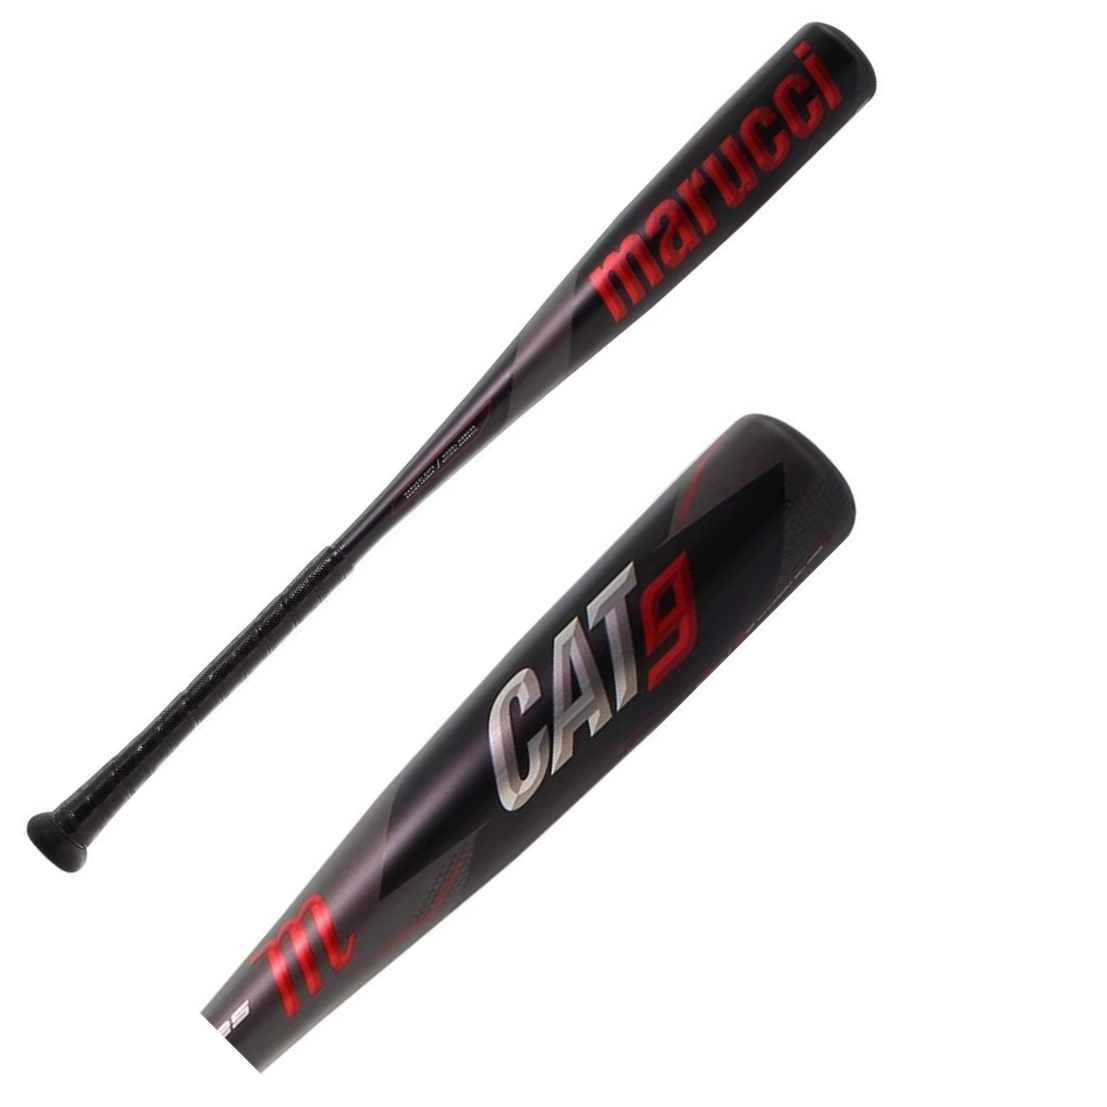 marucci-cat-9-8-usssa-baseball-bat-28-in-20-oz MSBC98-2820   Utilizing a three-stage thermal treatment process our new AZR alloy offers